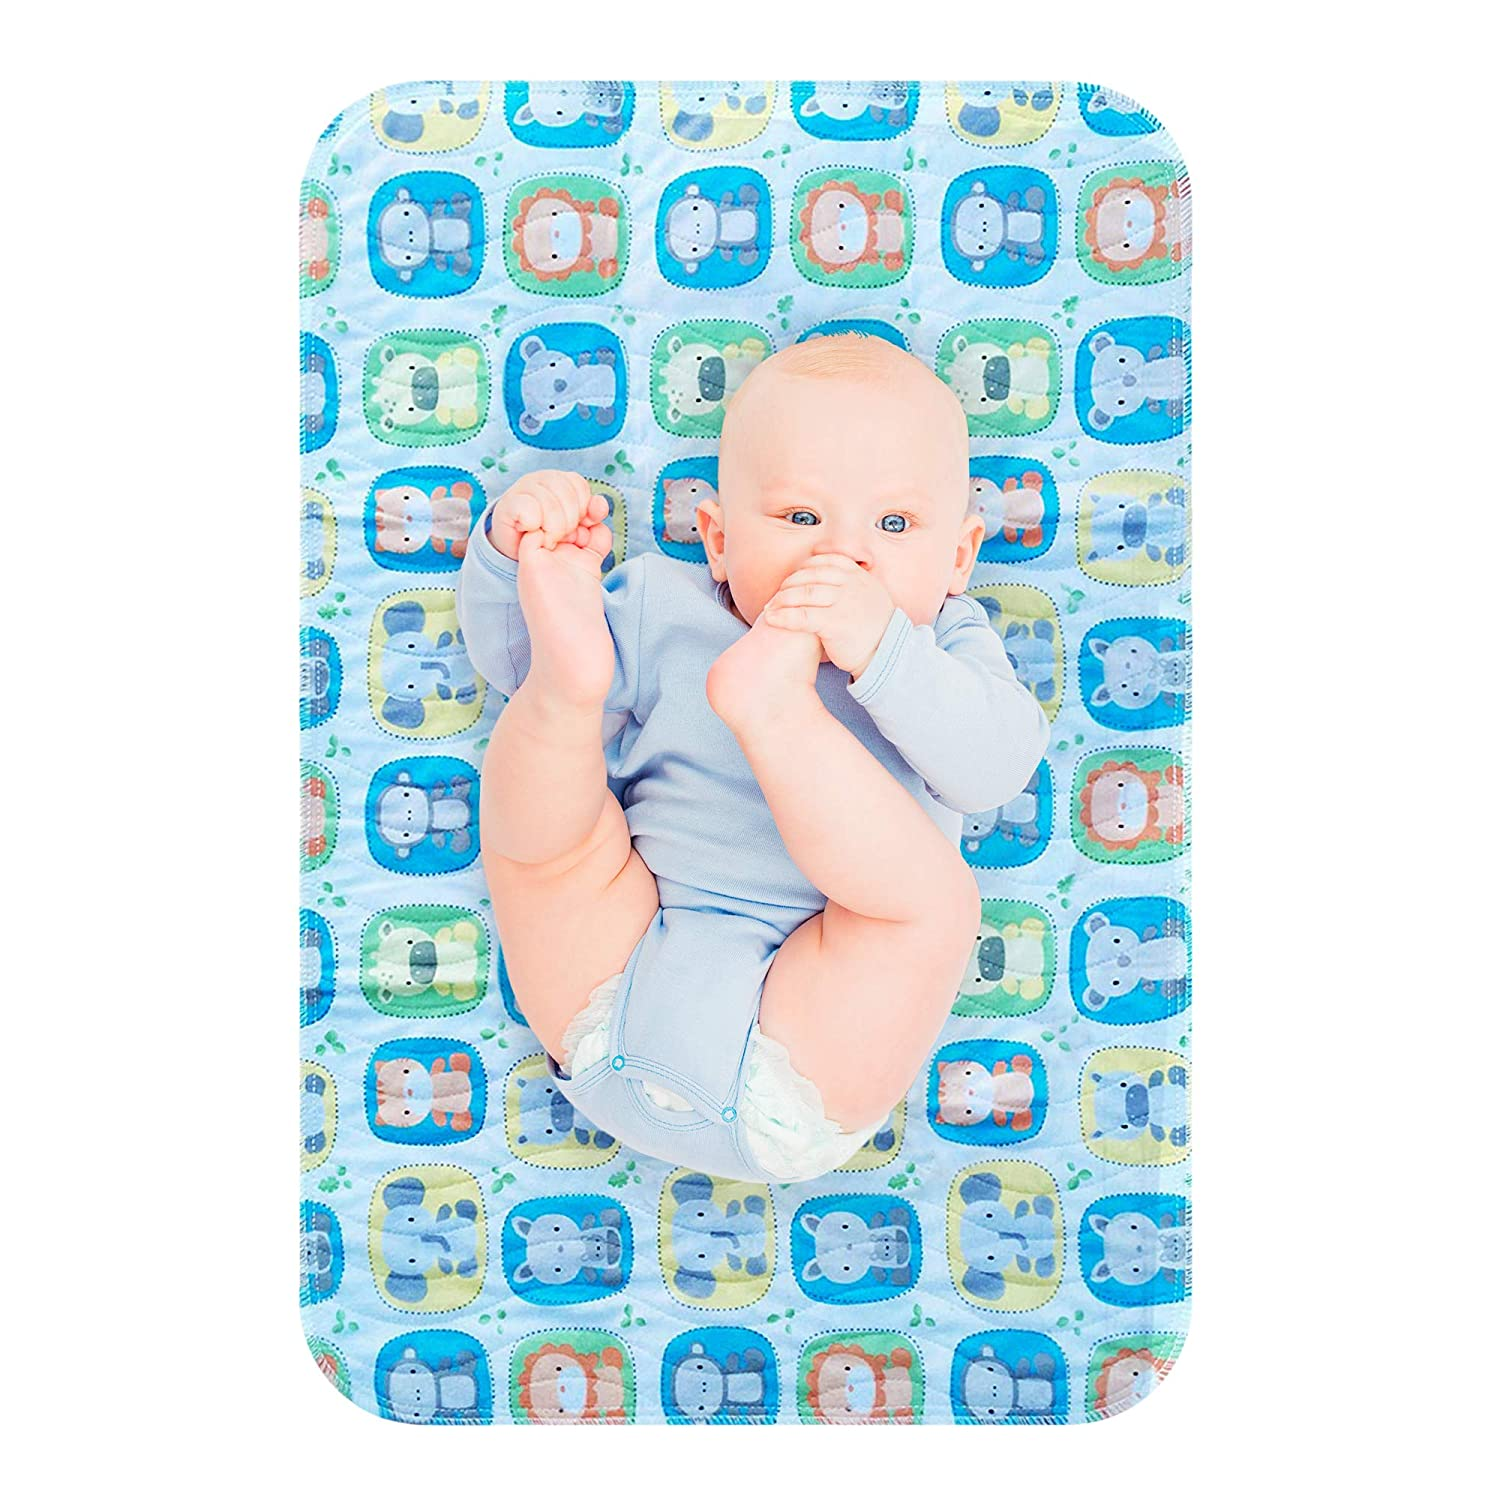 Baby/ Nappy/ Changing/ pad Mattress Pads Washable Foldable Breathable Cartoon Strong Absorbent Waterproof Cute for Babies Children Women Portable Grey